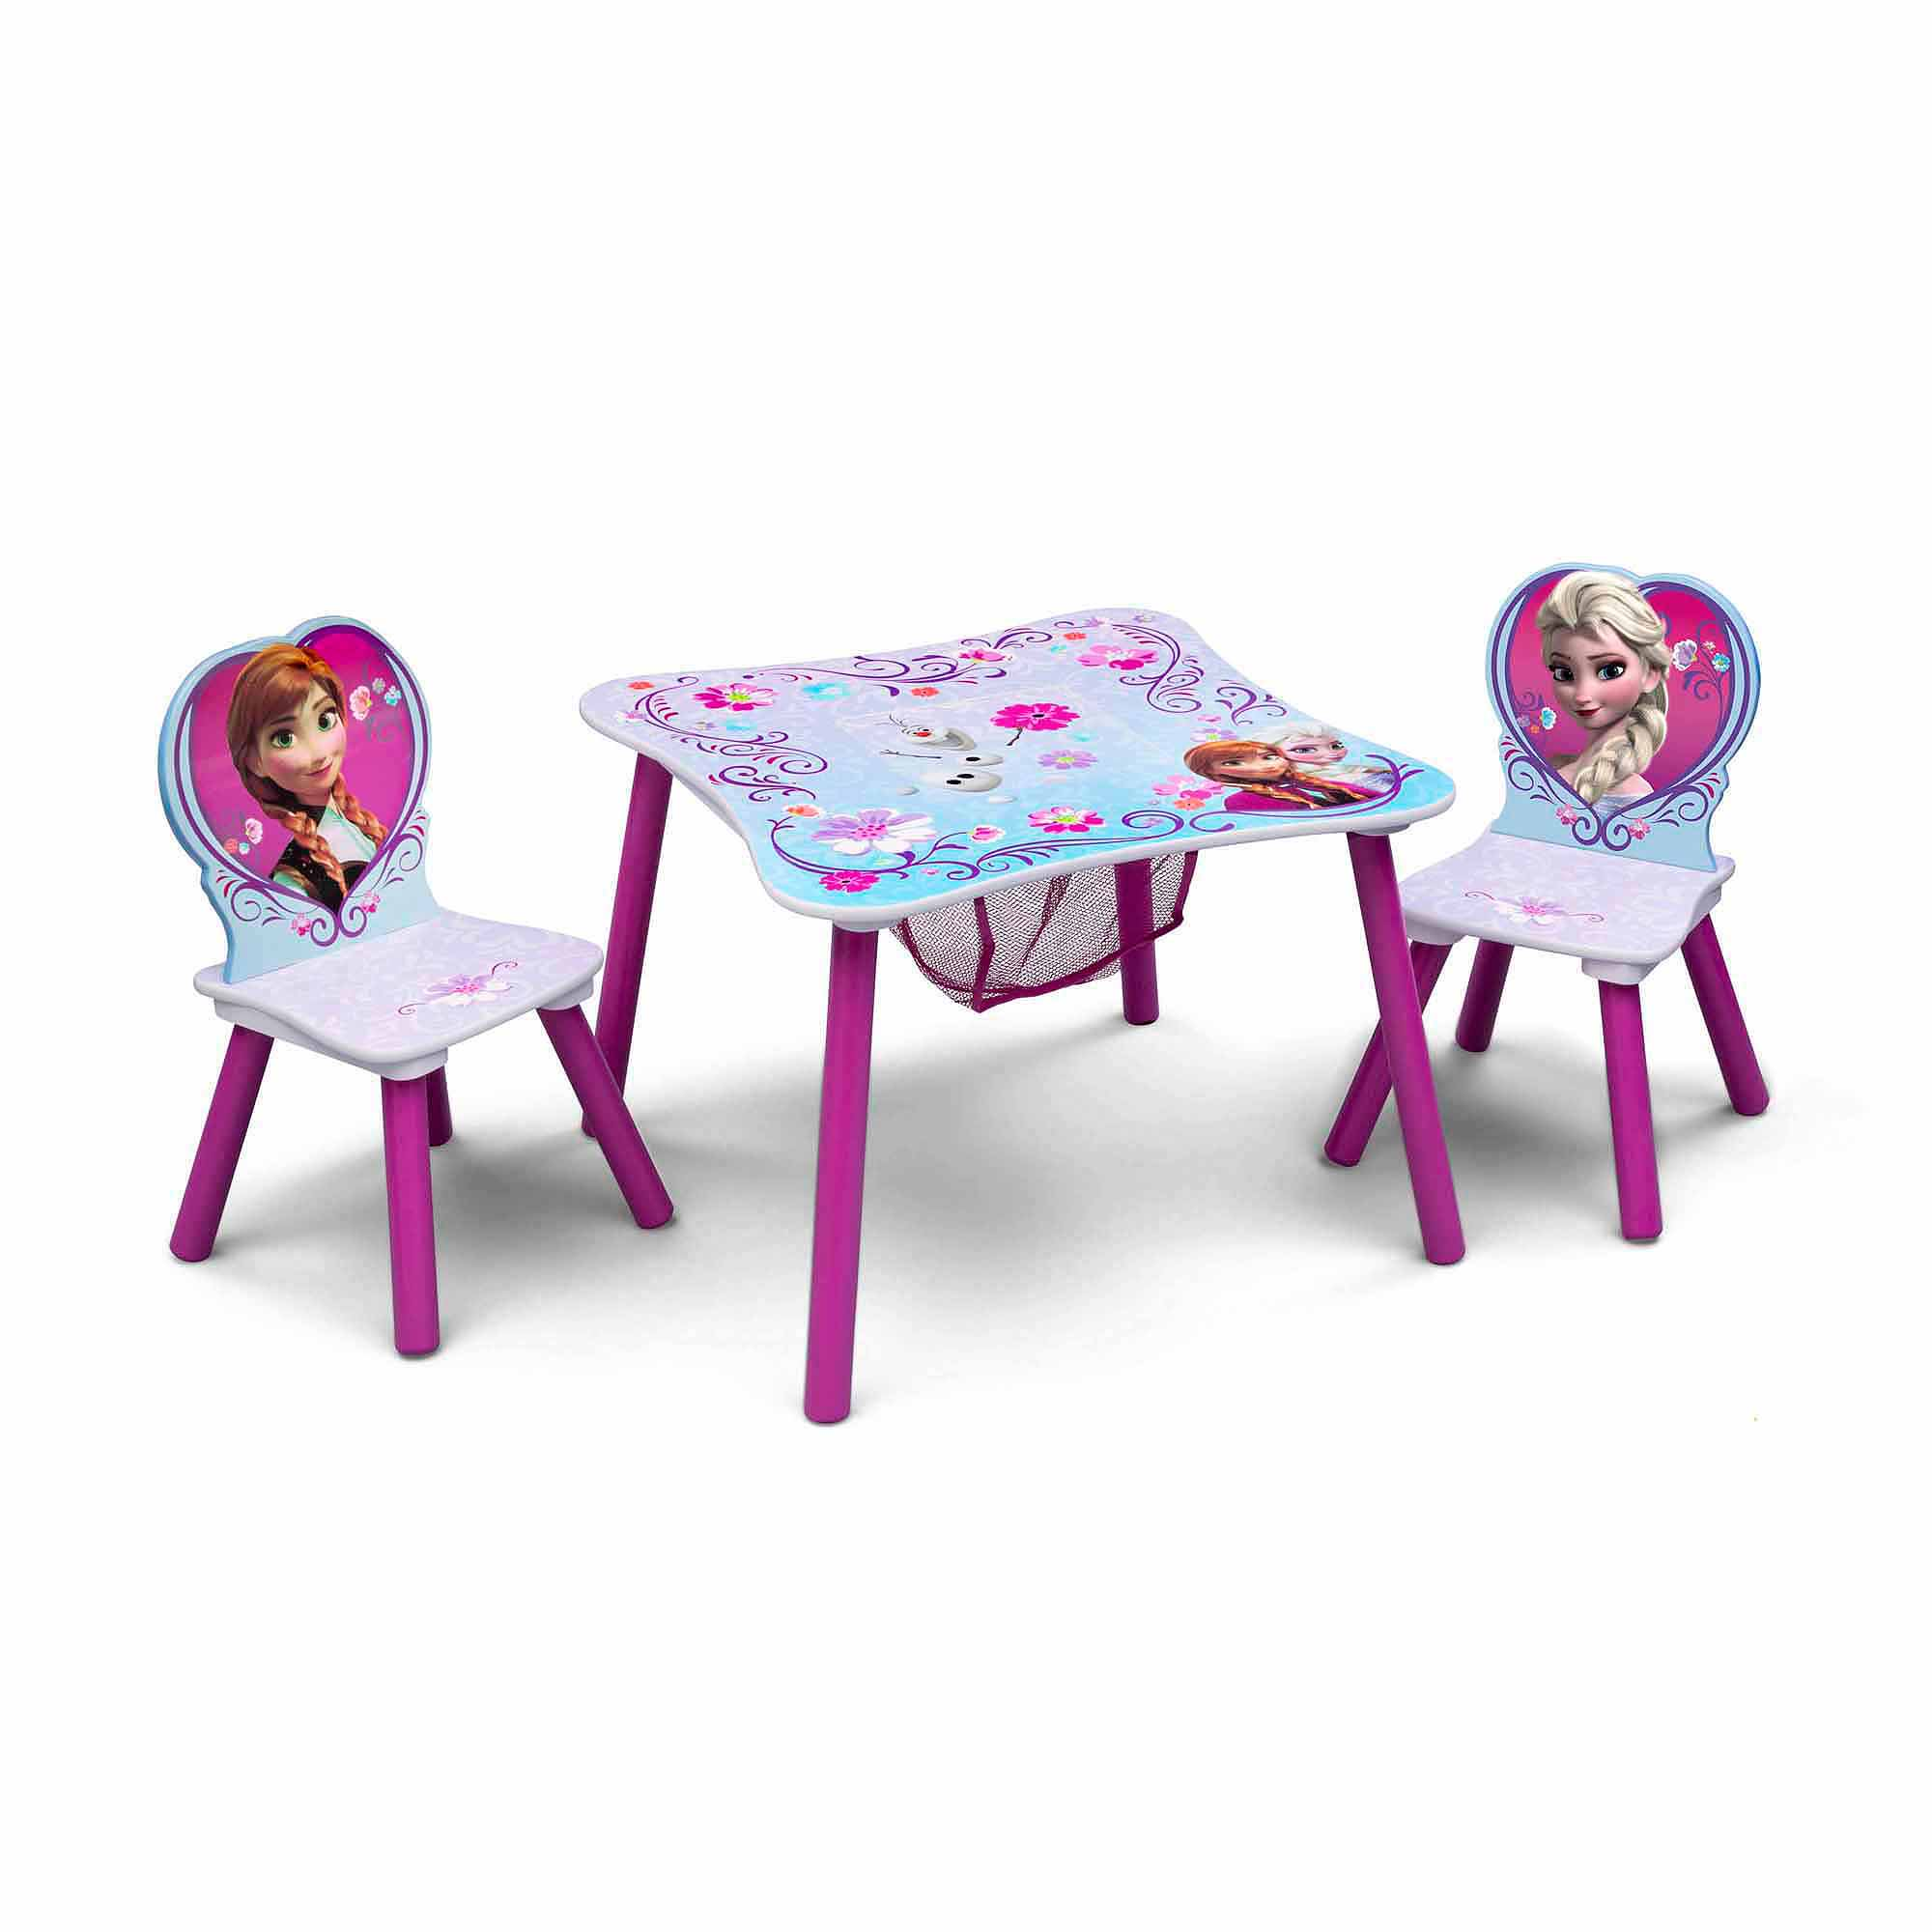 Frozen Toddler Table and Chair Set with Storage  sc 1 st  Walmart & Frozen Toddler Table and Chair Set with Storage - Walmart.com